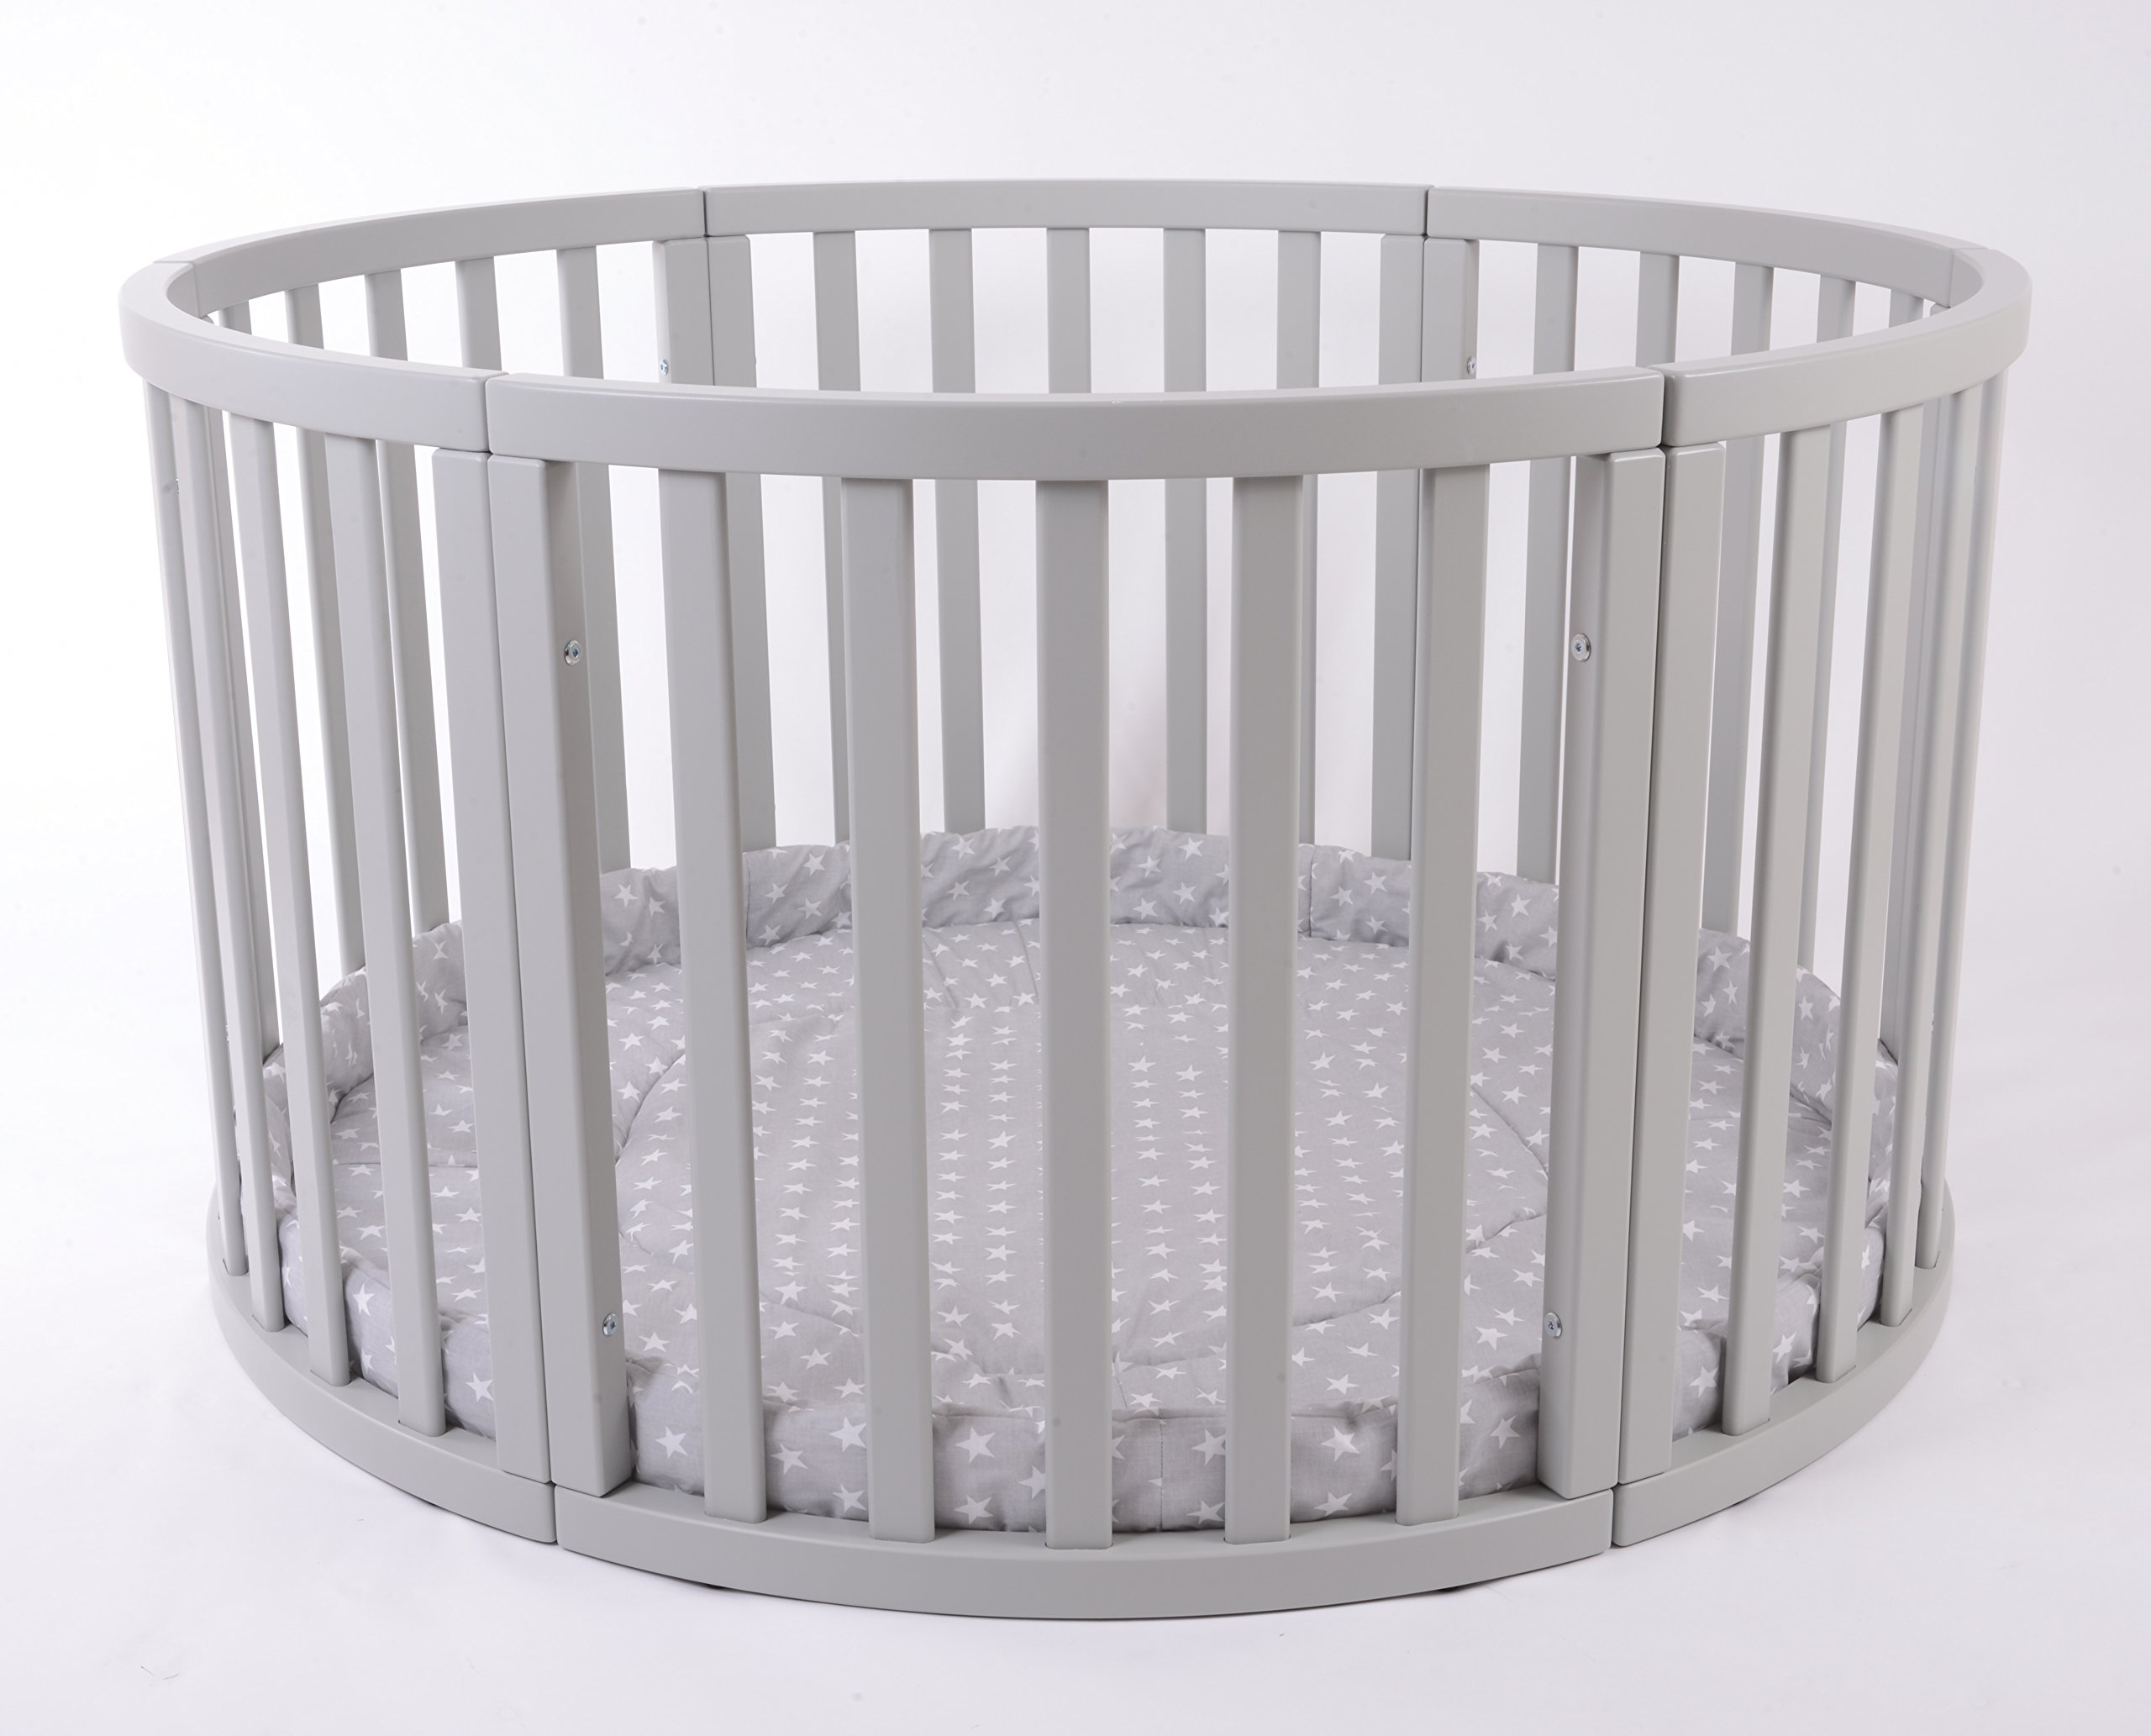 MJmark Round PLAYPEN APOLLO QUATTRO VERY LARGE Wooden play pen with play-mat SALE SALE (Grey Stars) MJmark Height 70 cm approx; Ø 120cm including Playmat made from solid hard wood (Birch) 2